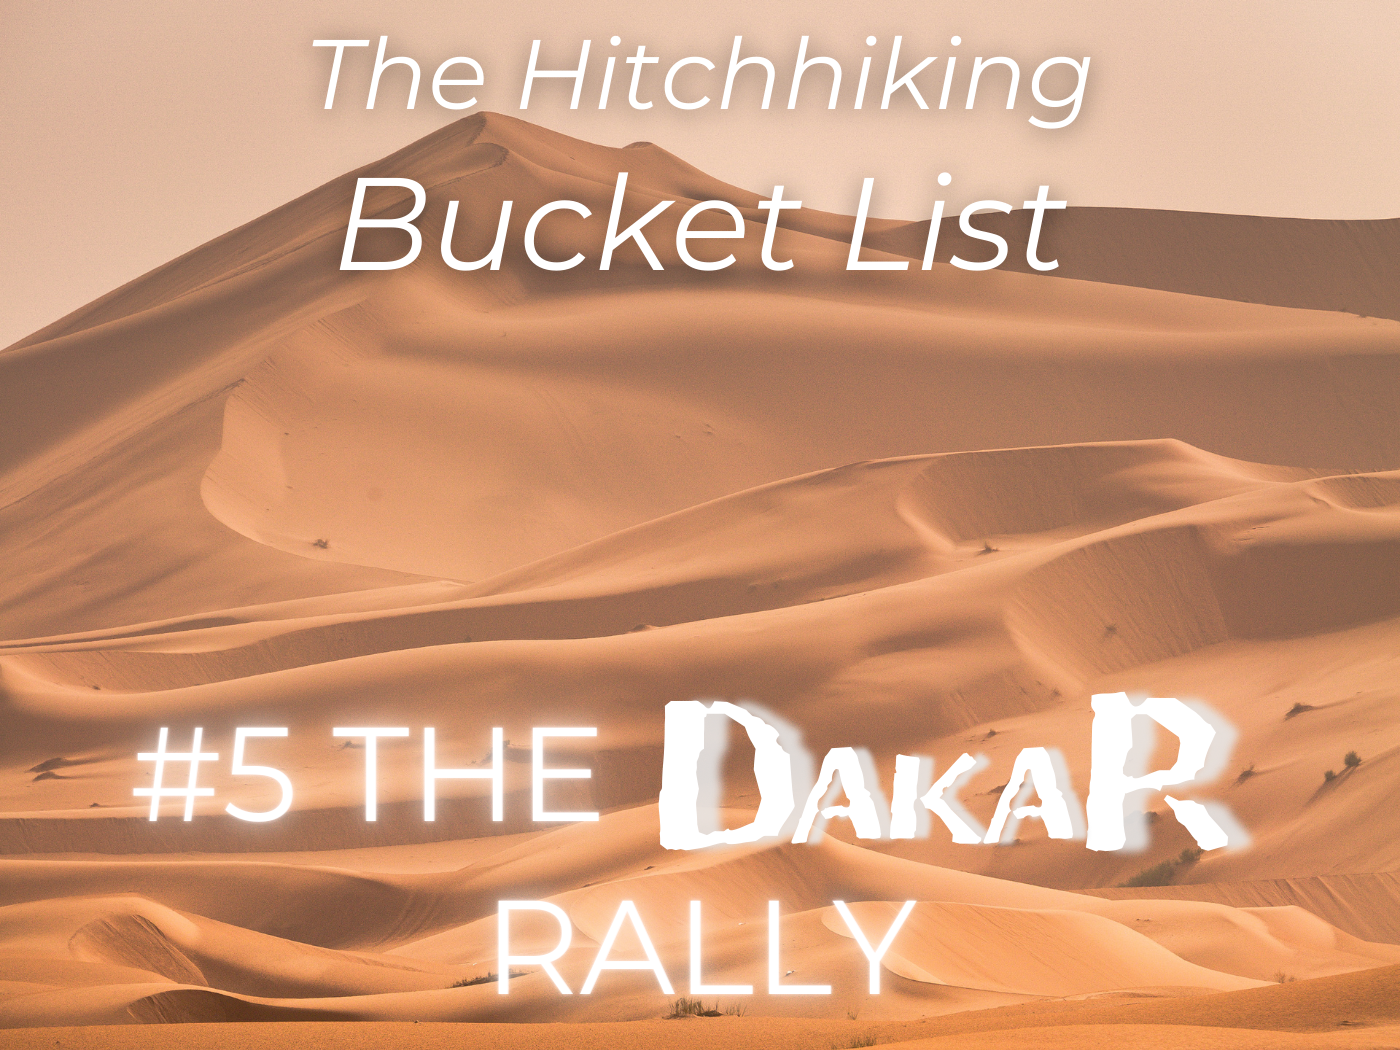 hitchhiking bucket list number 5 the dakar rally